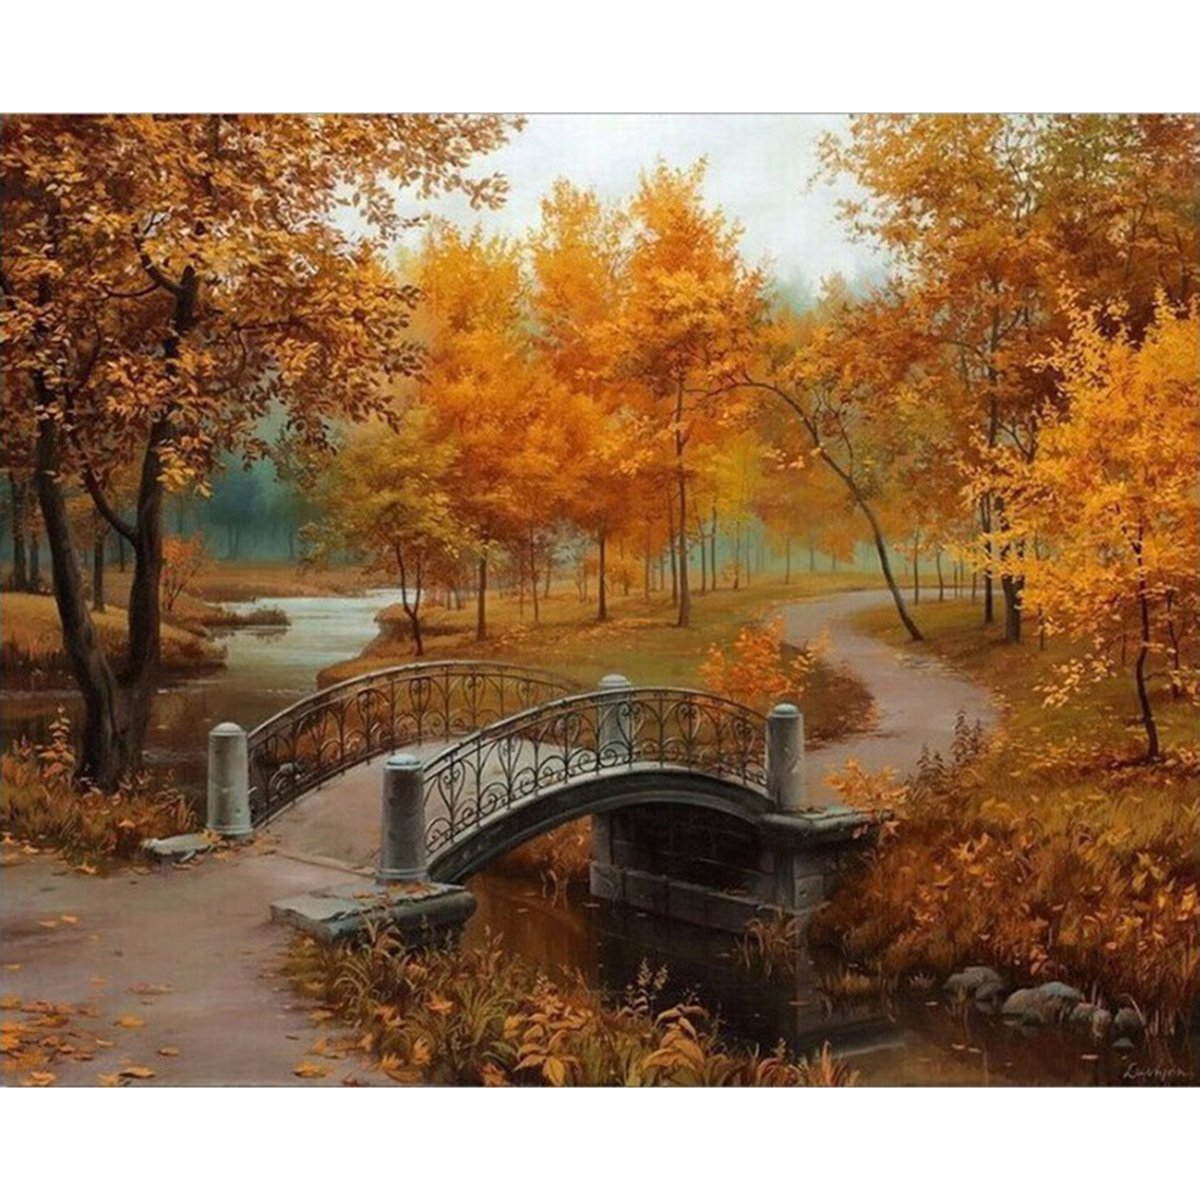 Shukqueen Diy Oil Painting, Adult's Paint by Number Kits, Acrylic Painting-Autumn 16X20 Inch (Framed Canvas)